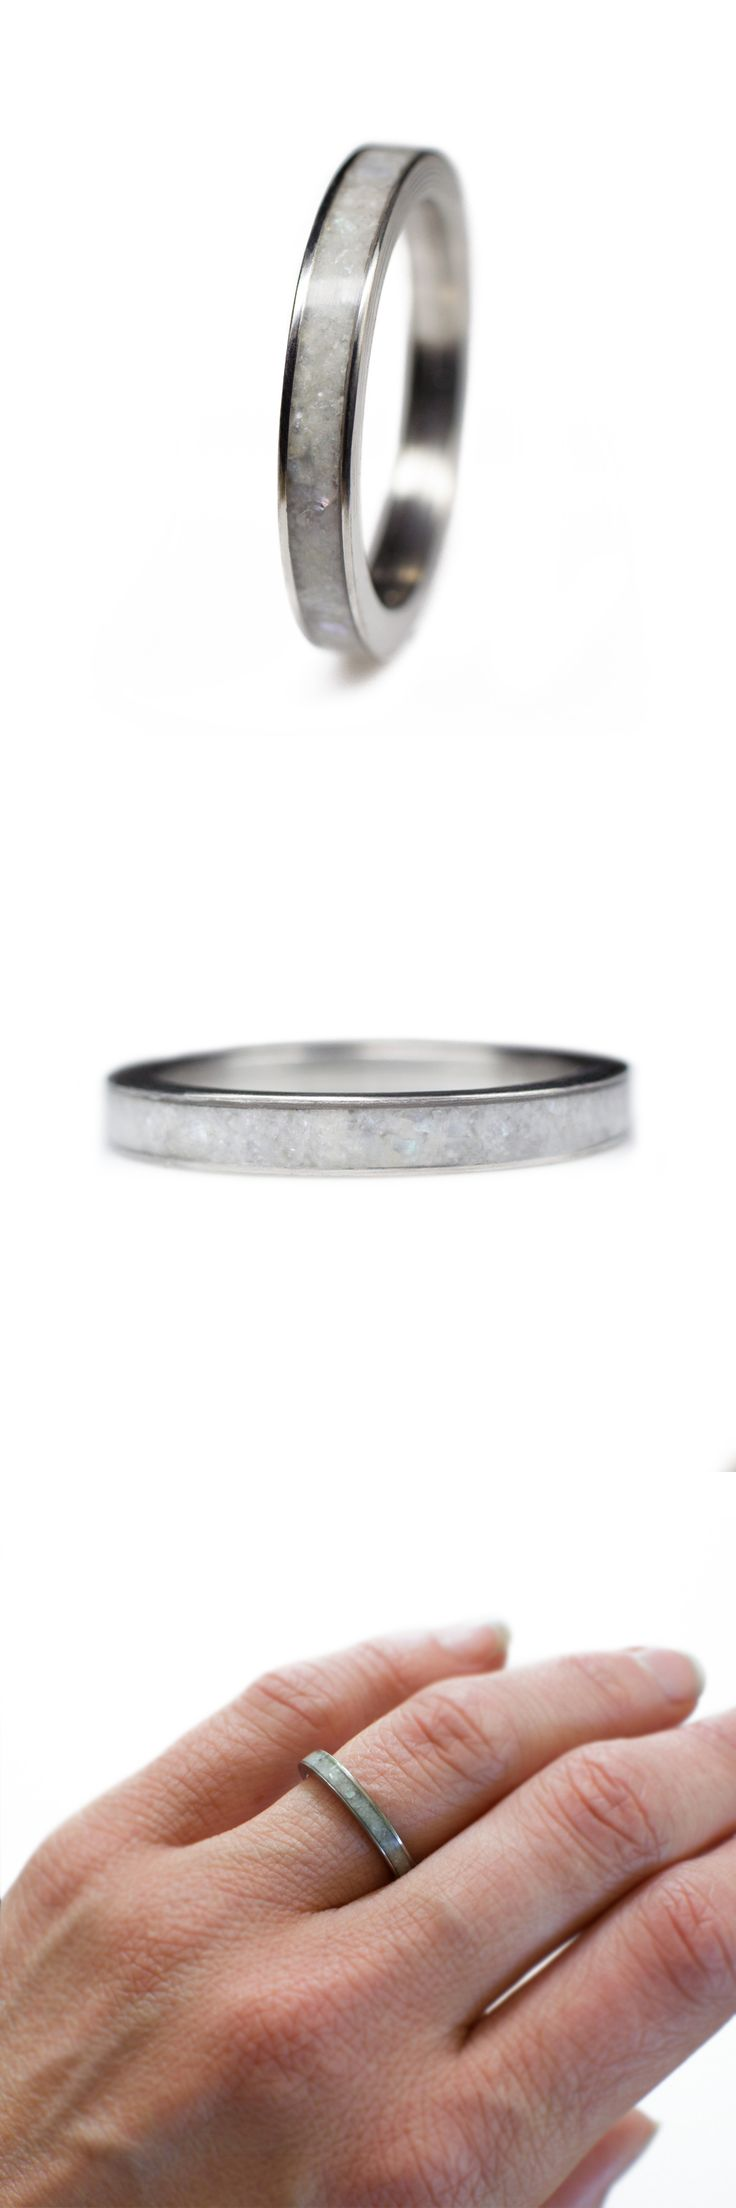 A Titanium Ring Inlaid With Mother Of Pearl